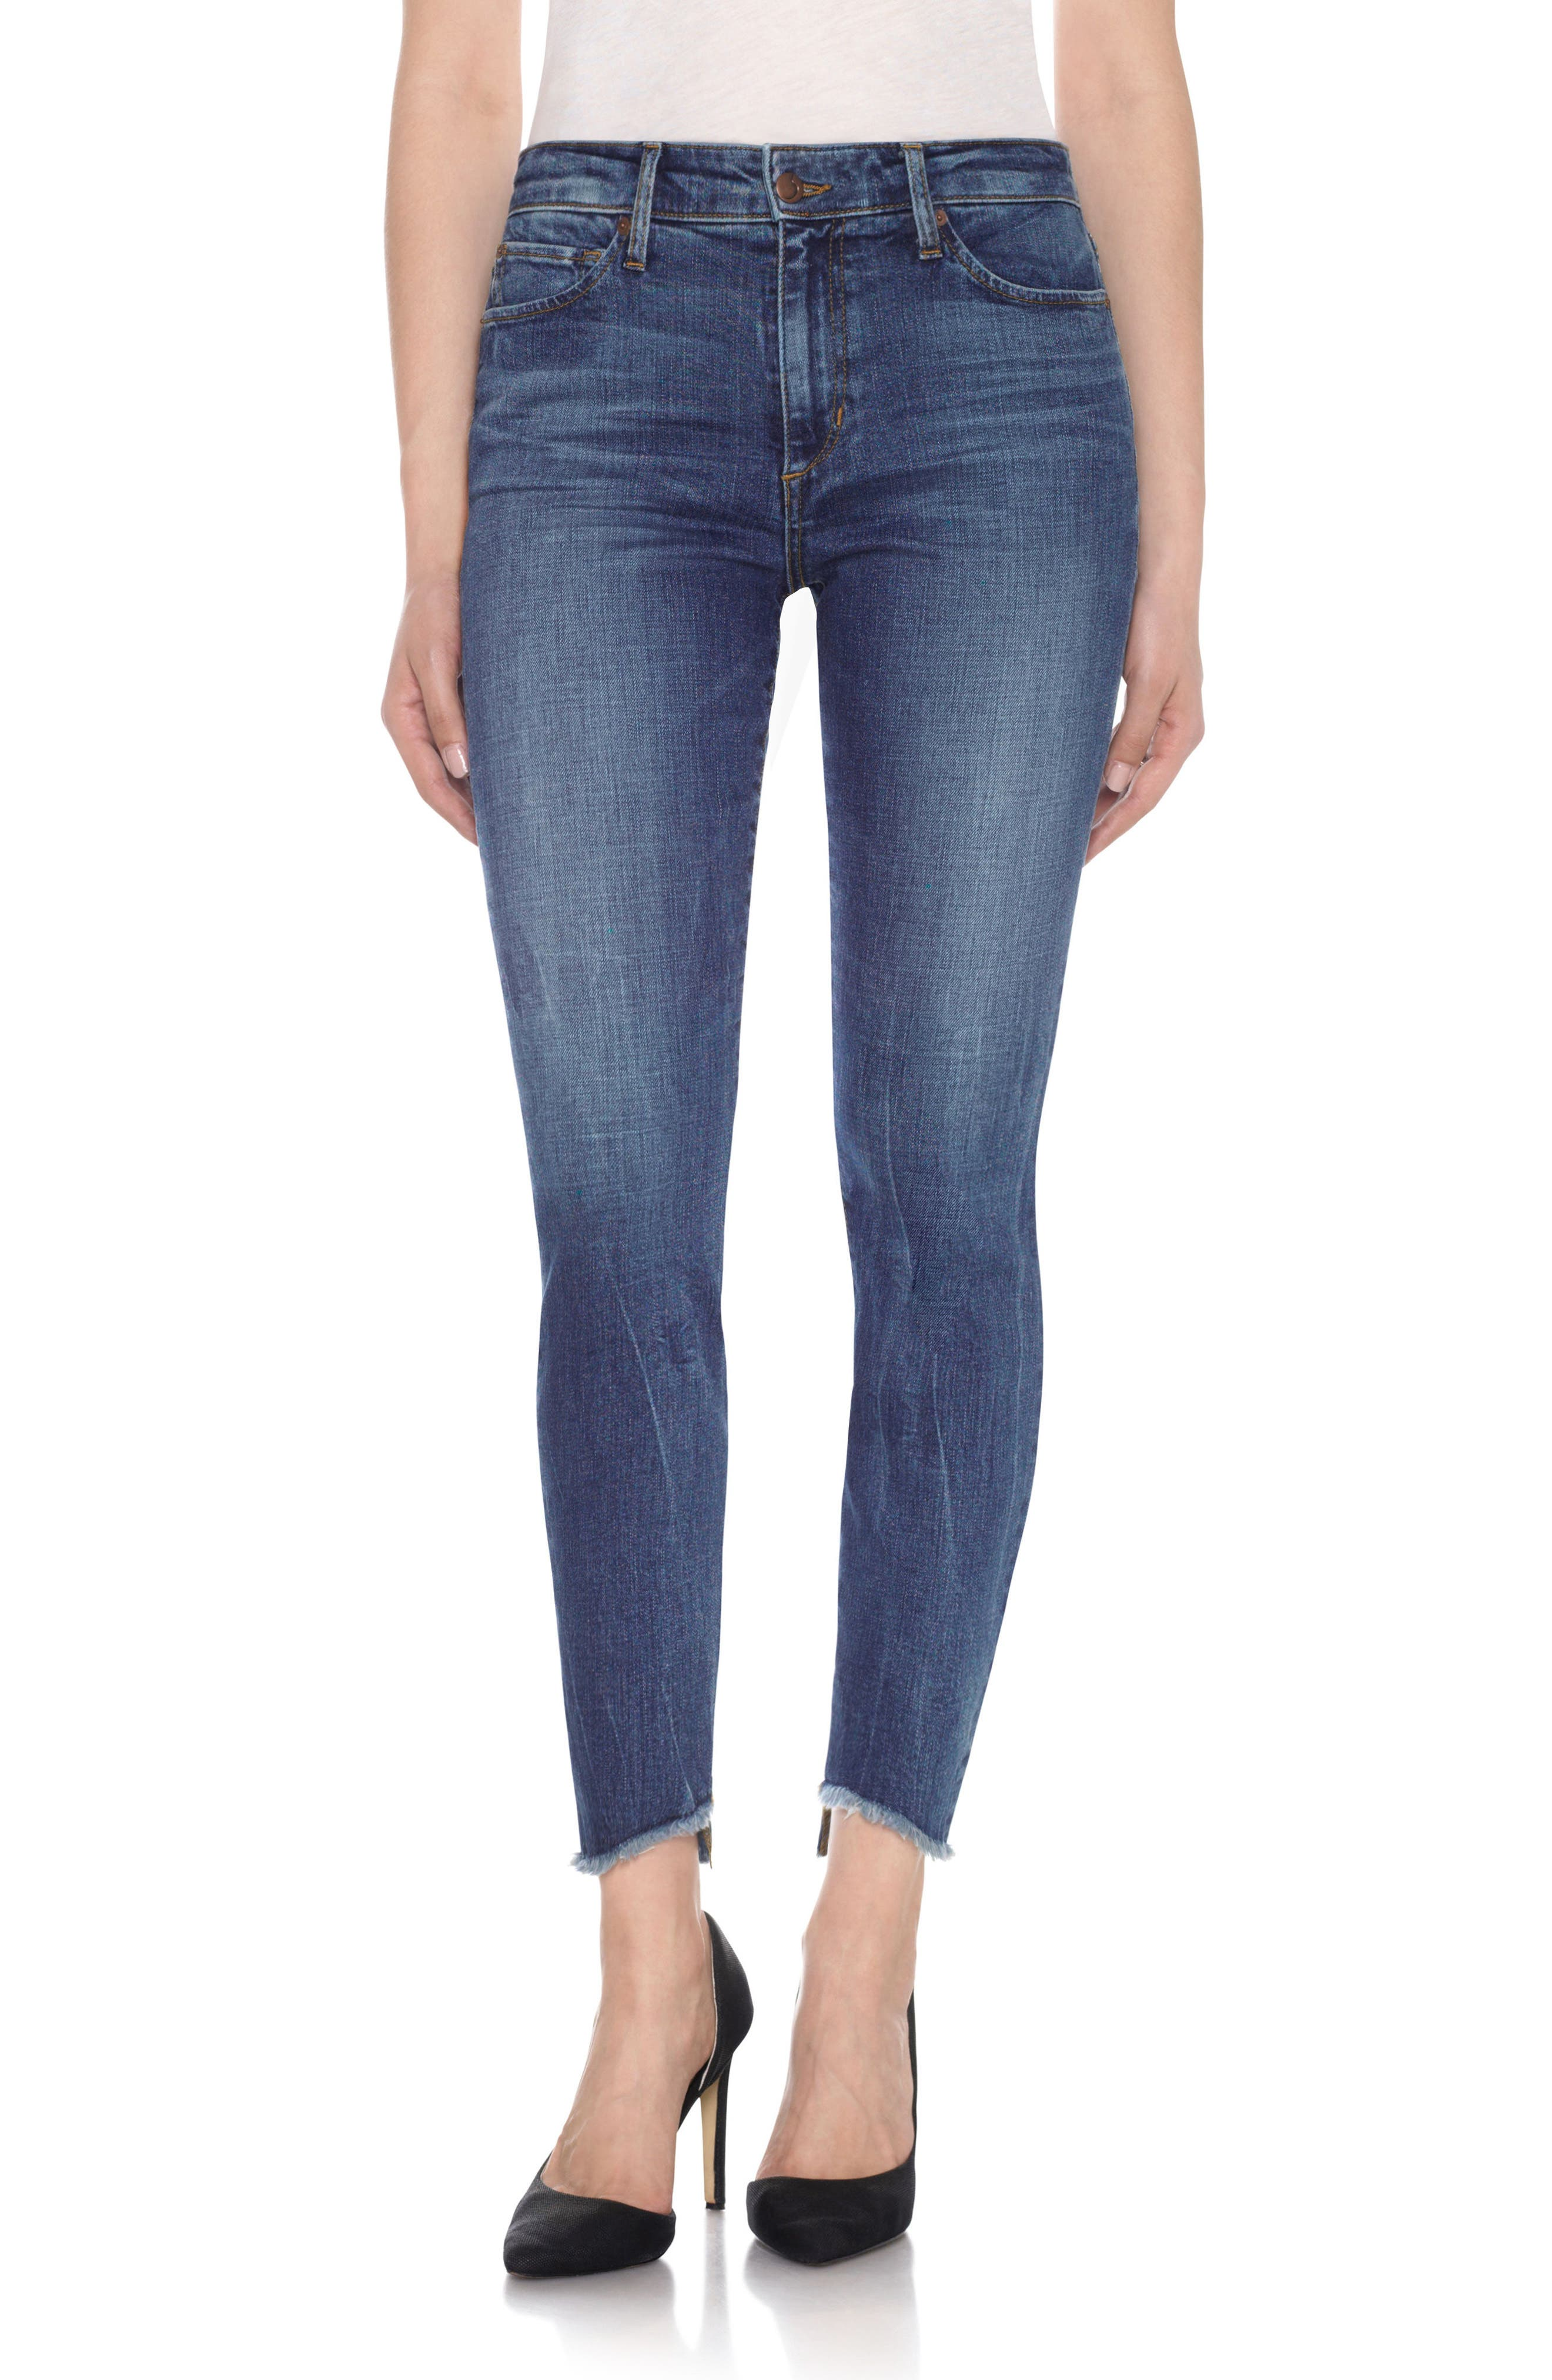 Charlie - Blondie High Rise Ankle Skinny Jeans,                         Main,                         color, 462